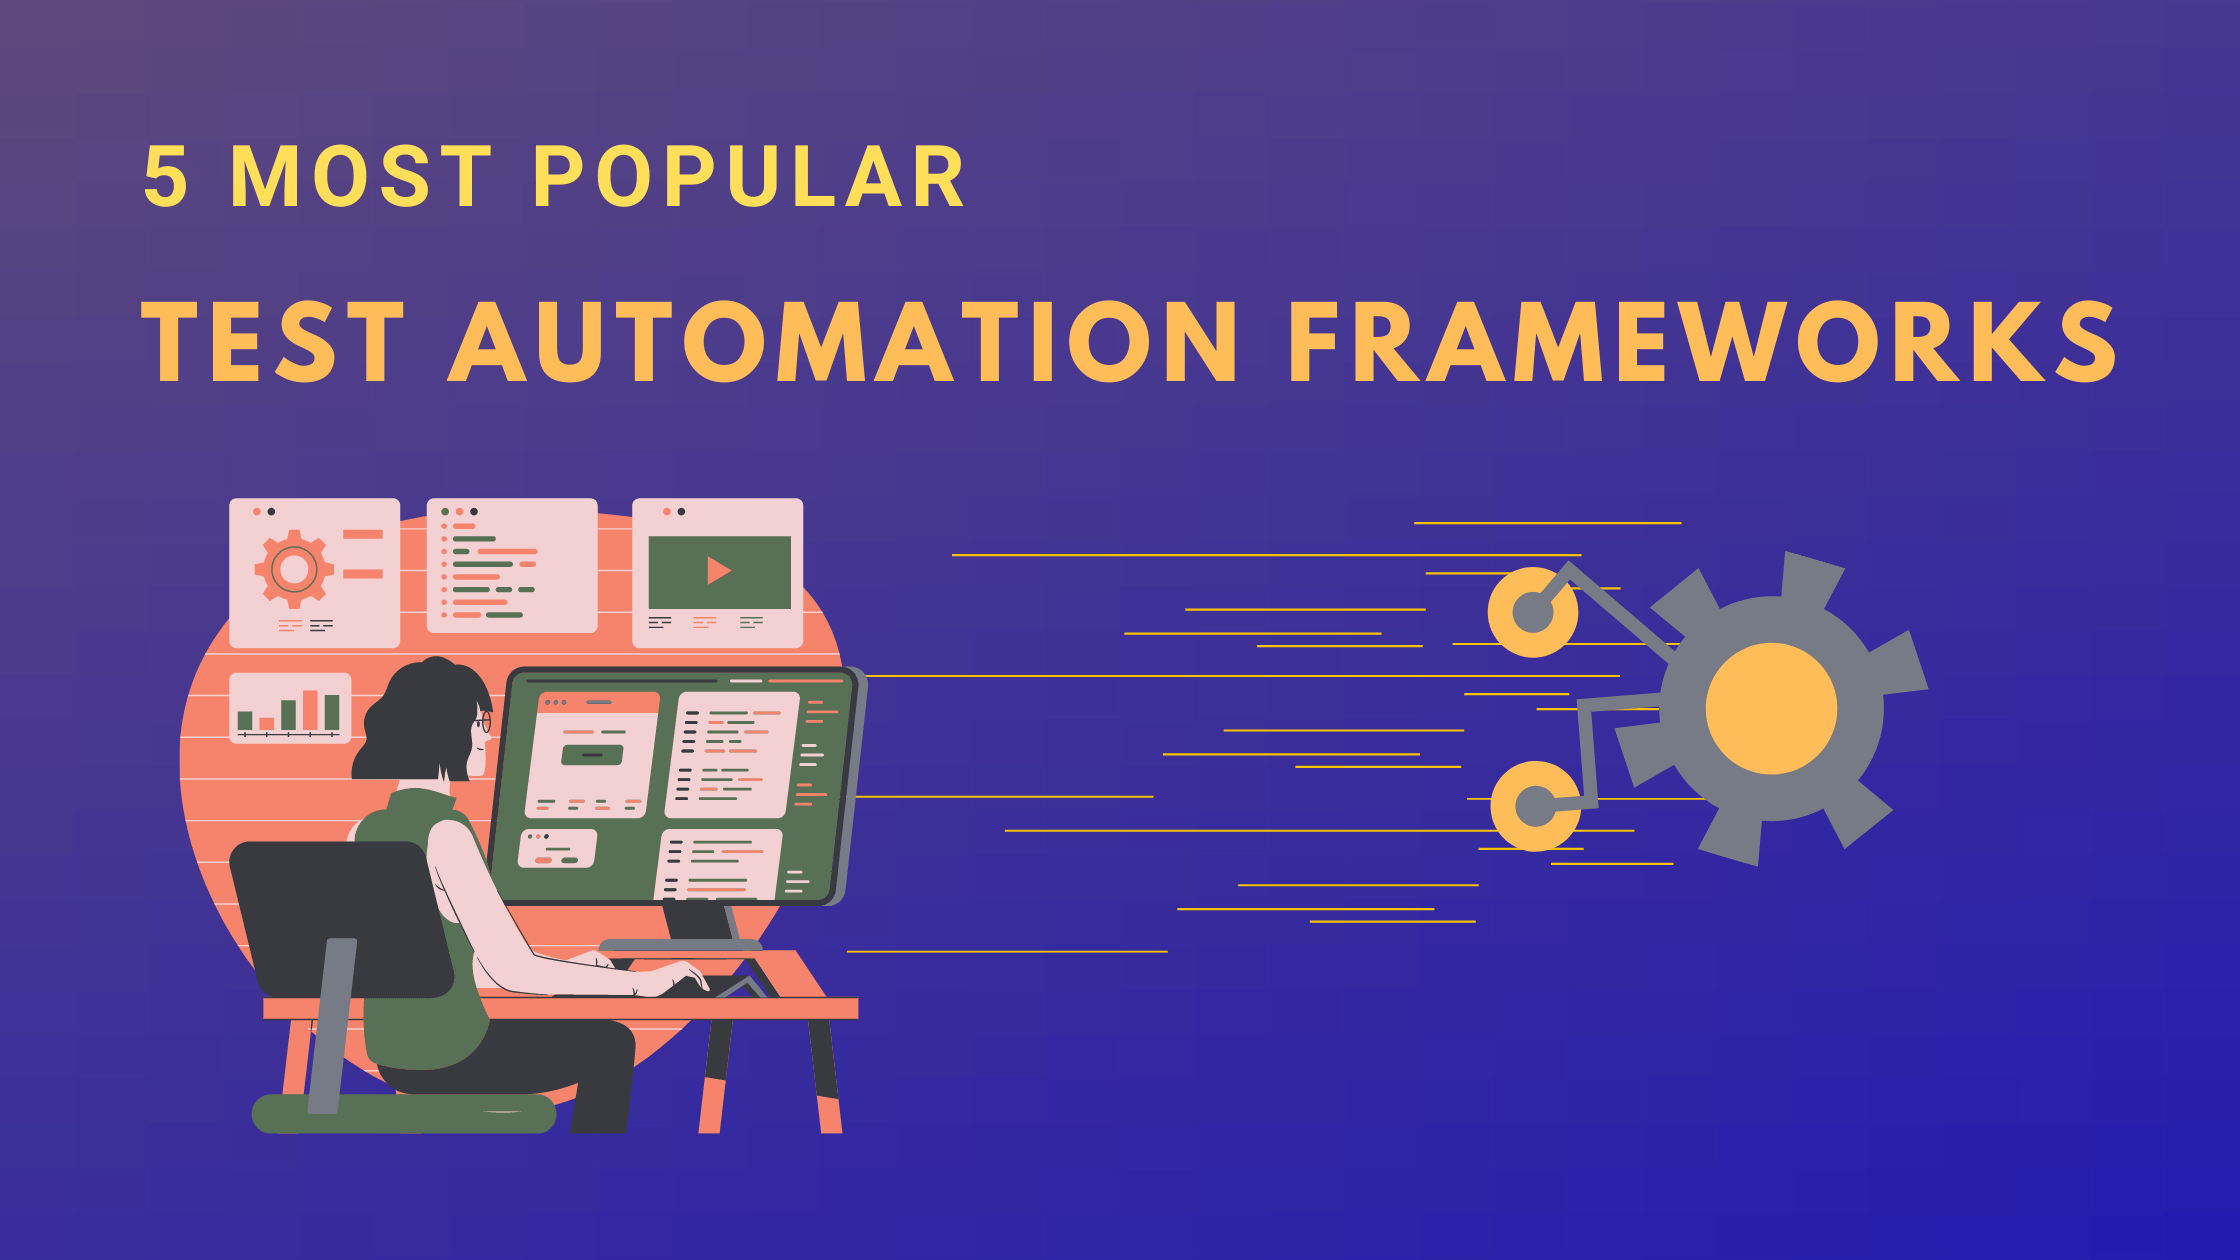 5 Best Test Automation Framework